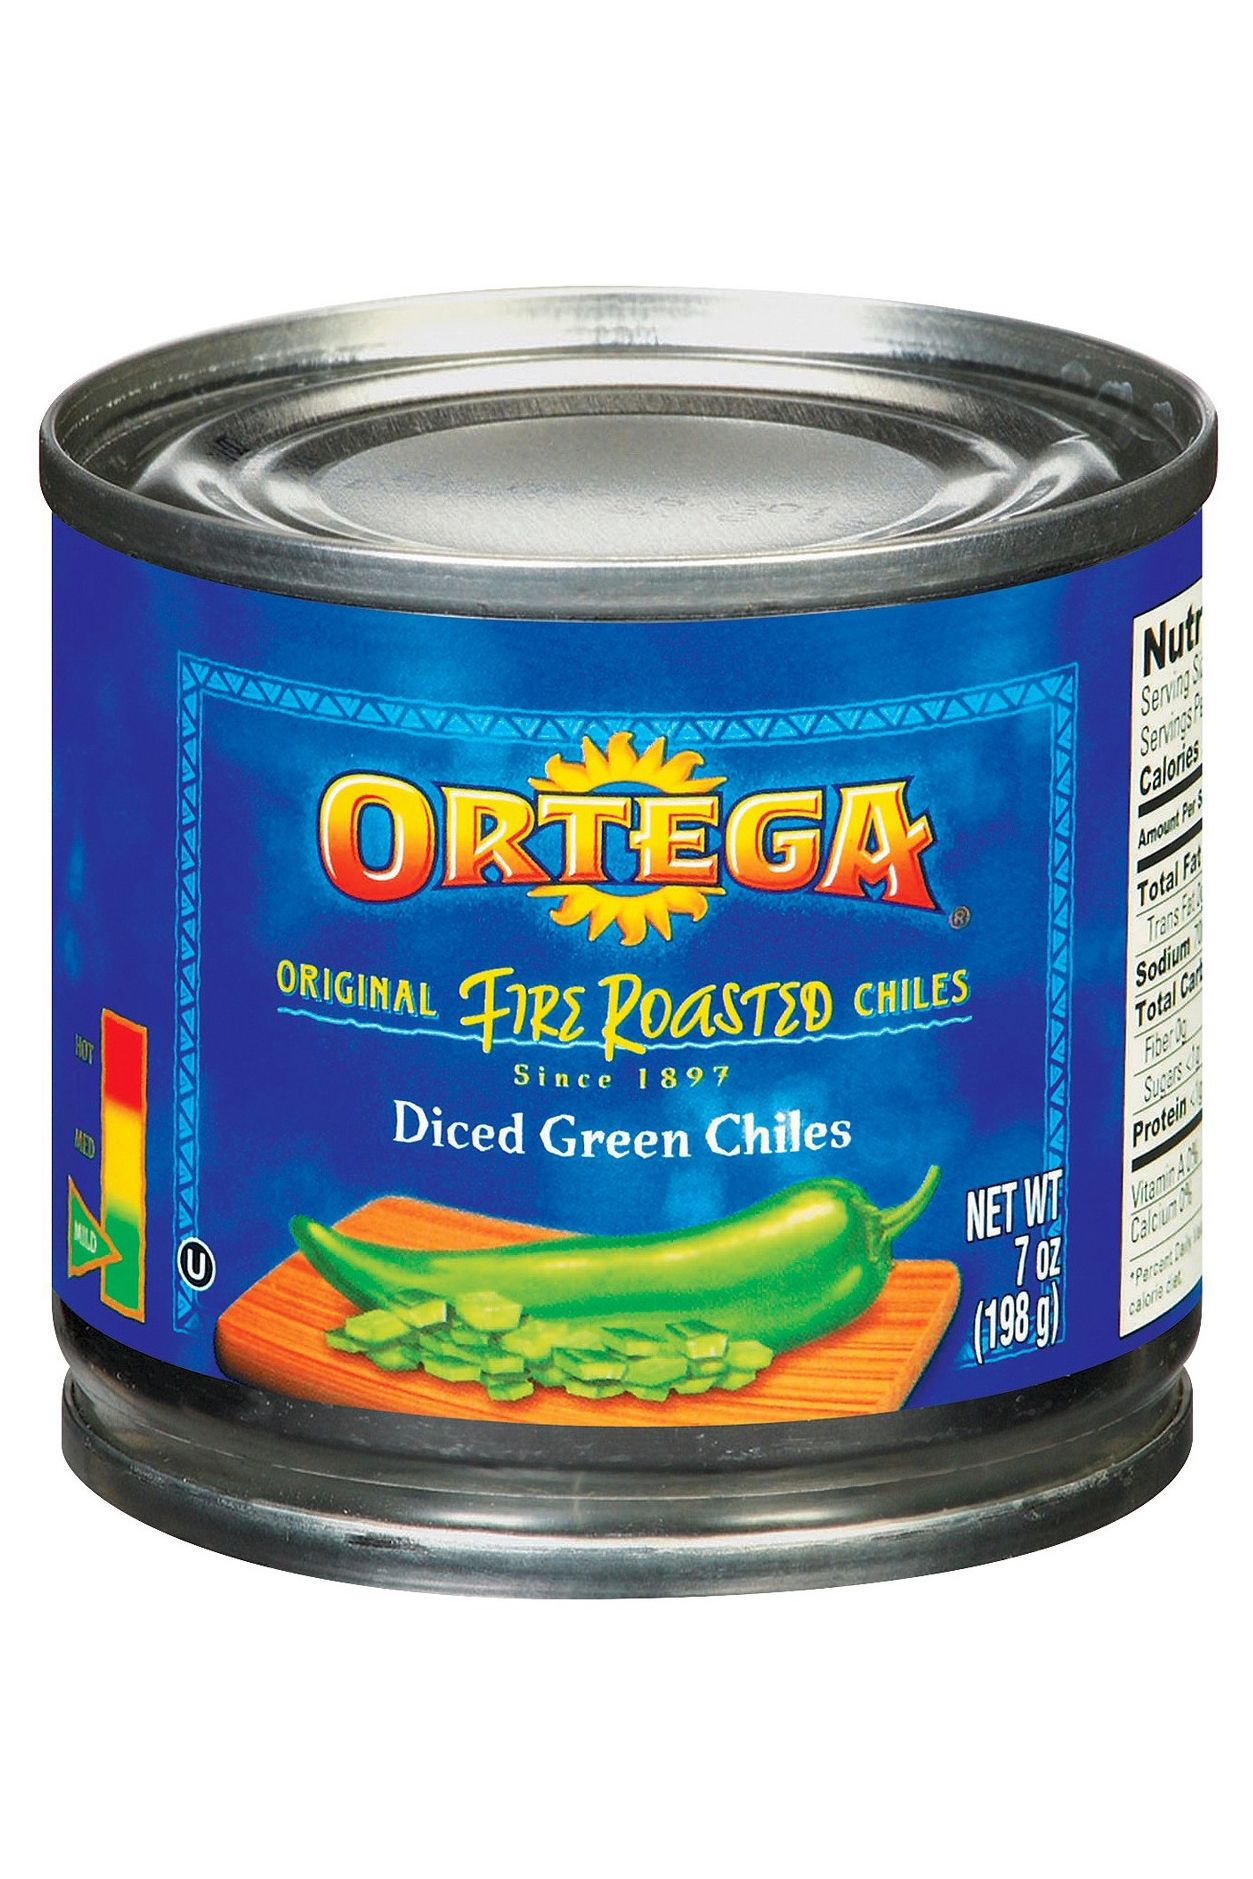 30 Healthy Canned Foods You Should Stock Up On – 5 Kinds You